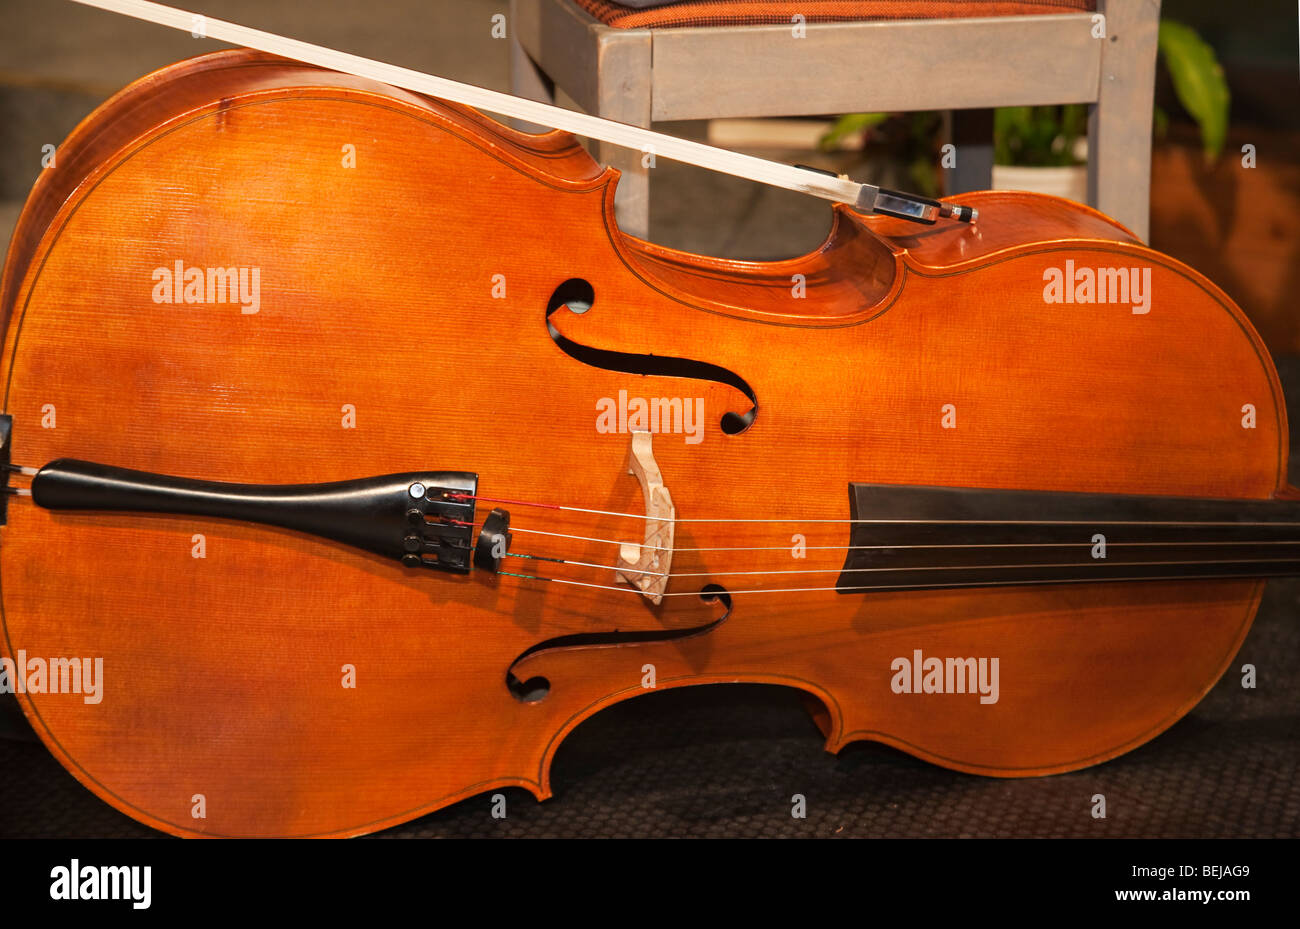 cello cello bow string instruments musical instruments - Stock Image